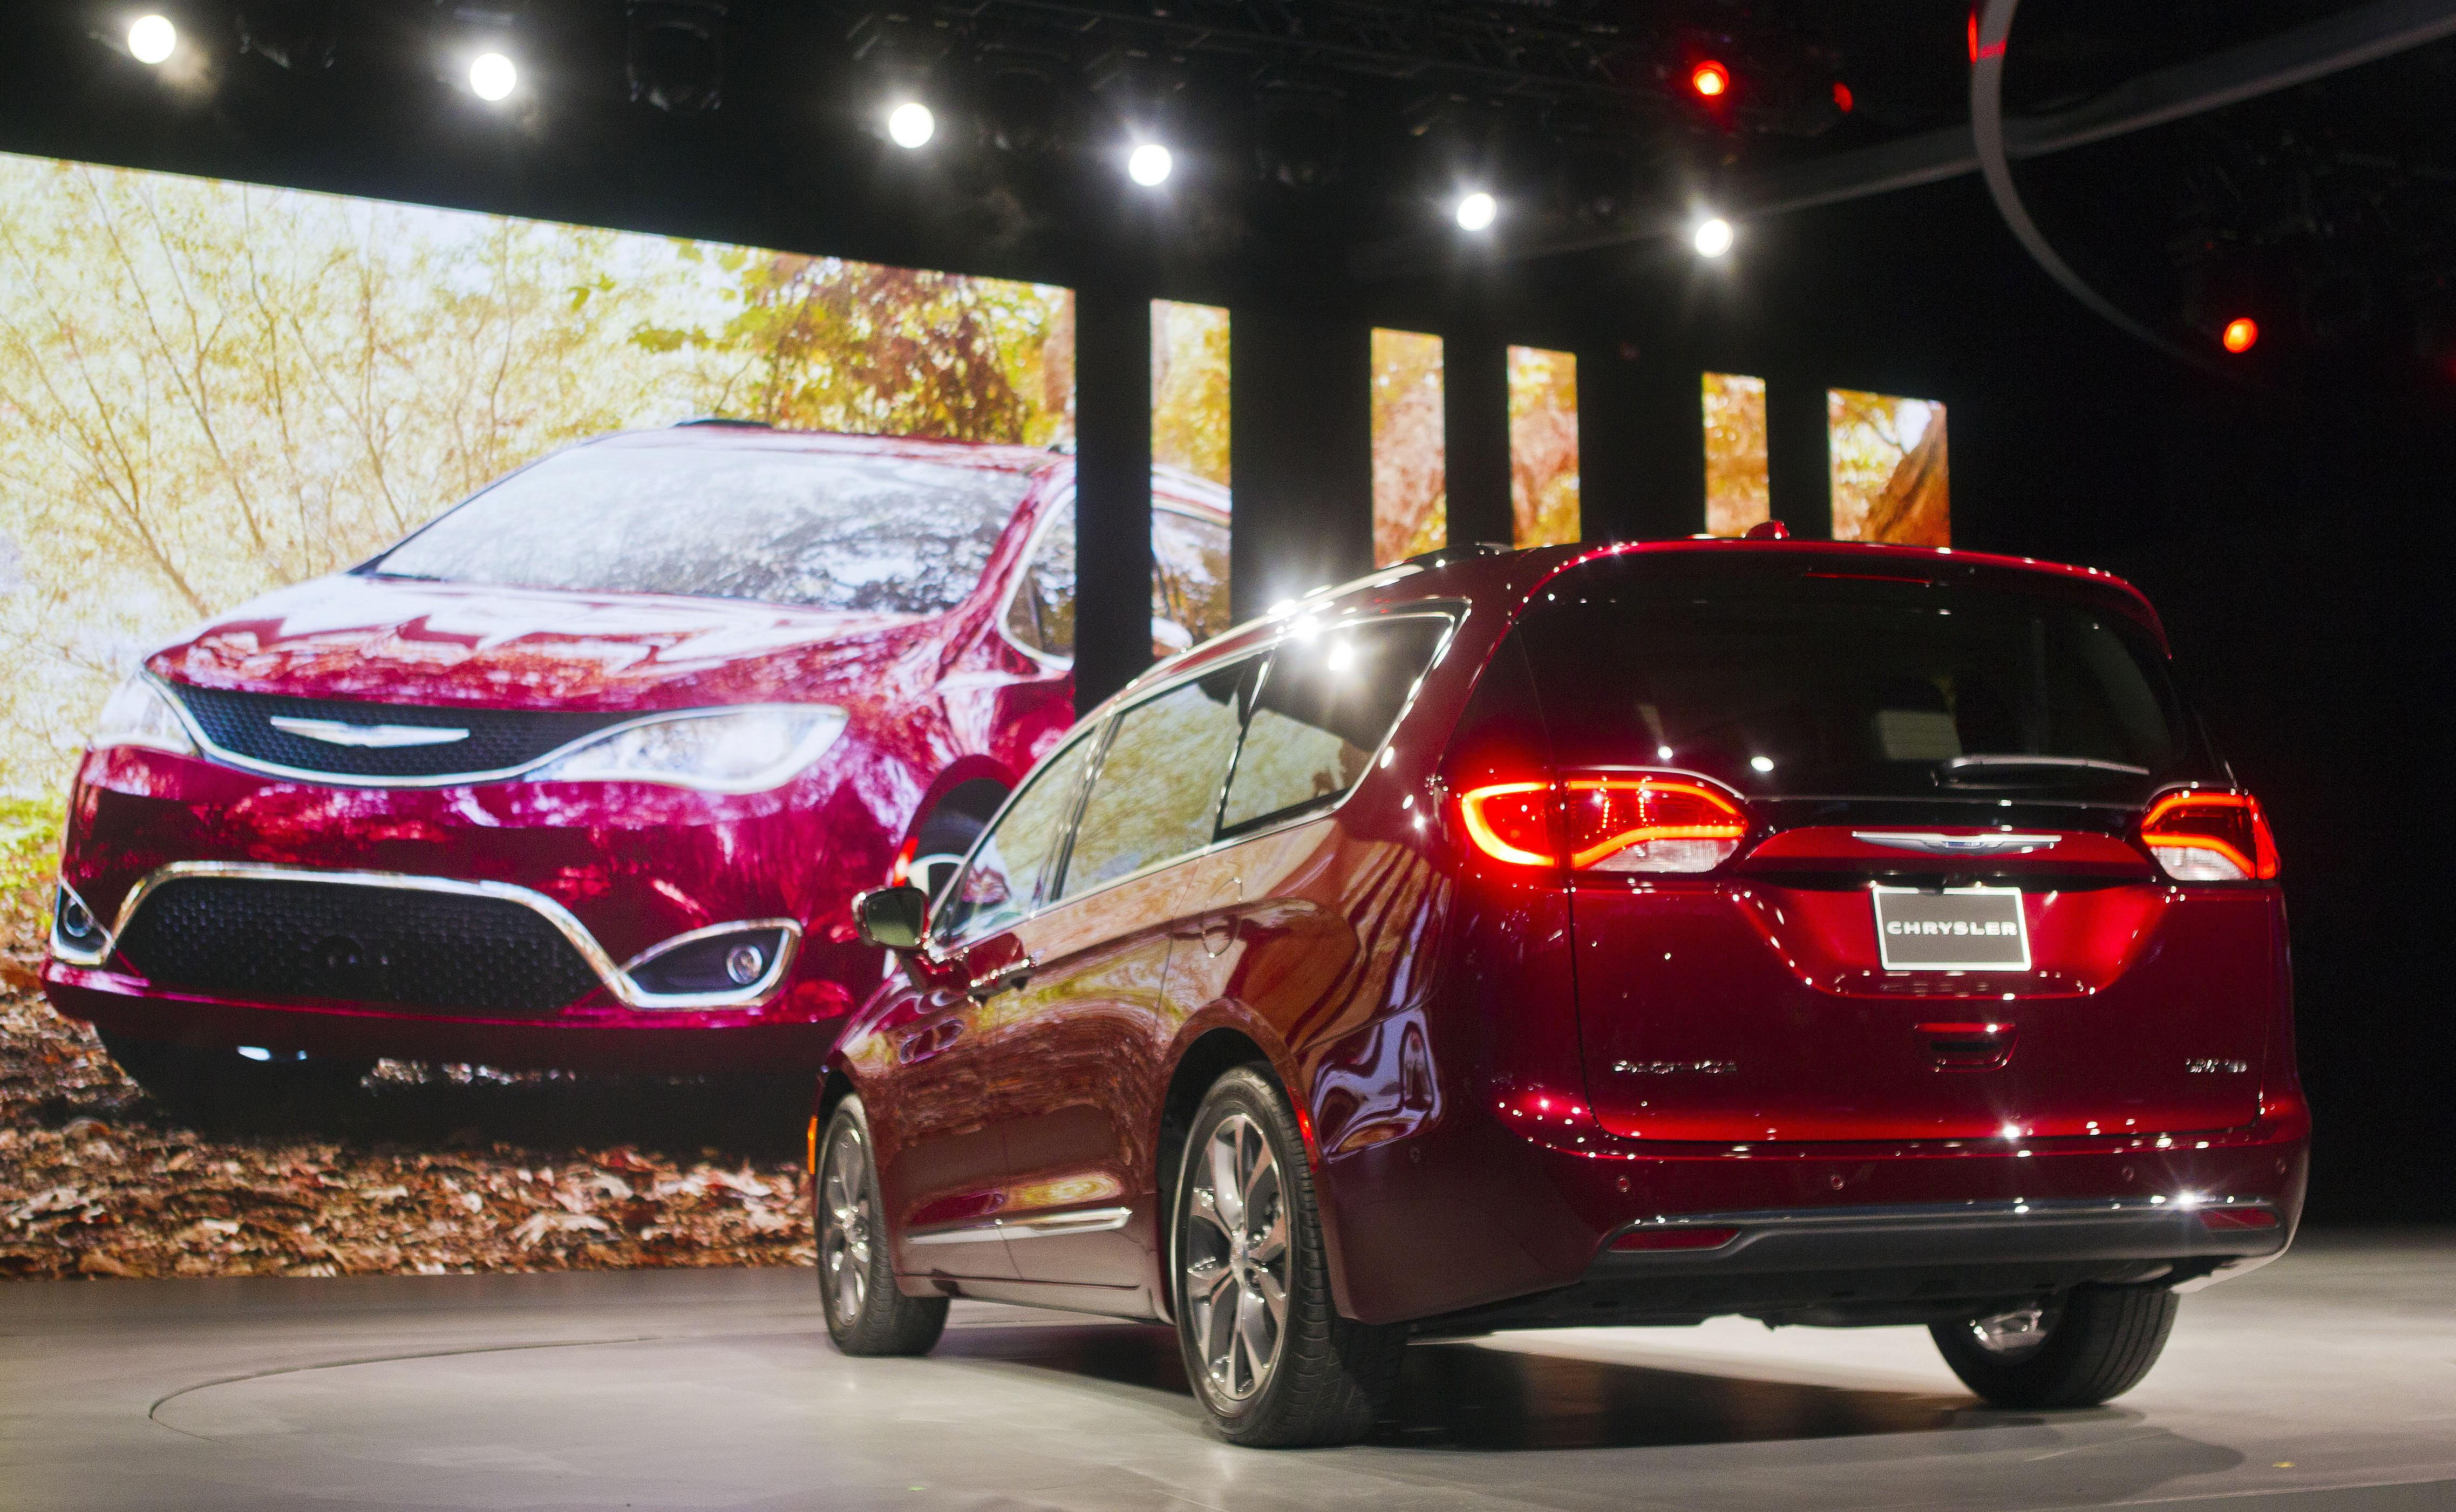 The 2017 Chrysler Pacifica Minivan Is Unveiled At North American International Auto Show On Monday